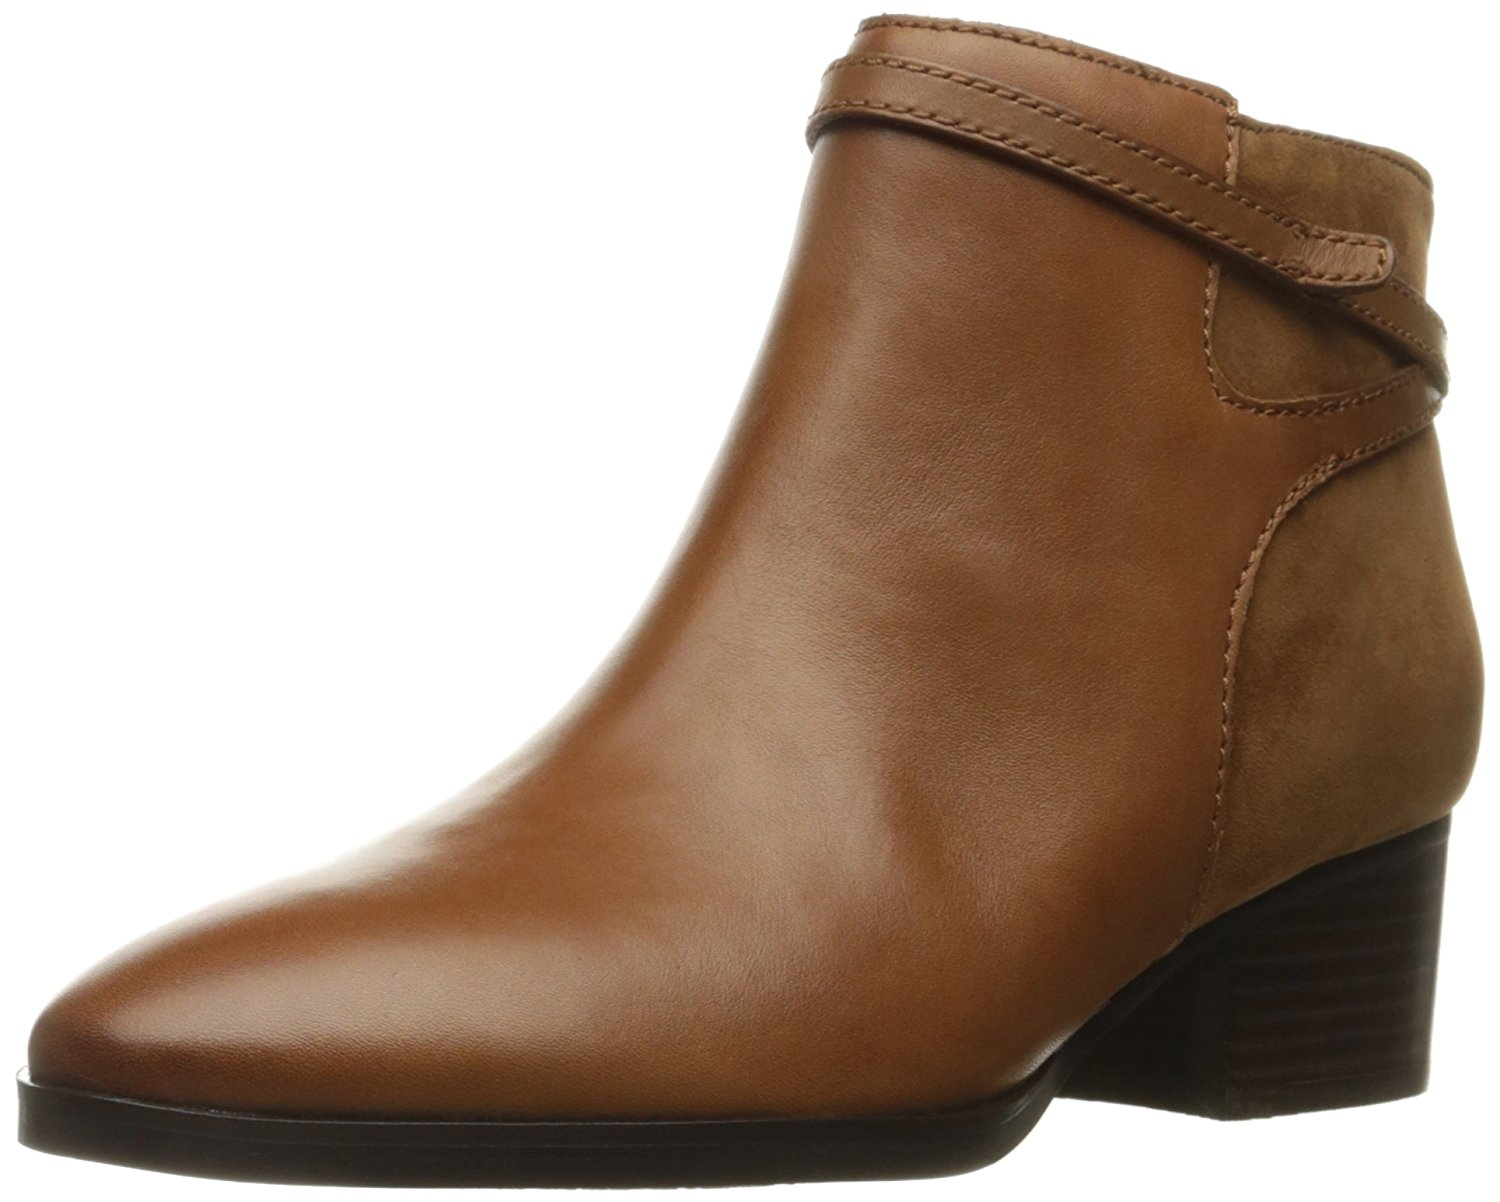 LAUREN by Ralph Lauren Womens DAMARA Leather Closed Toe Ankle Fashion Boots